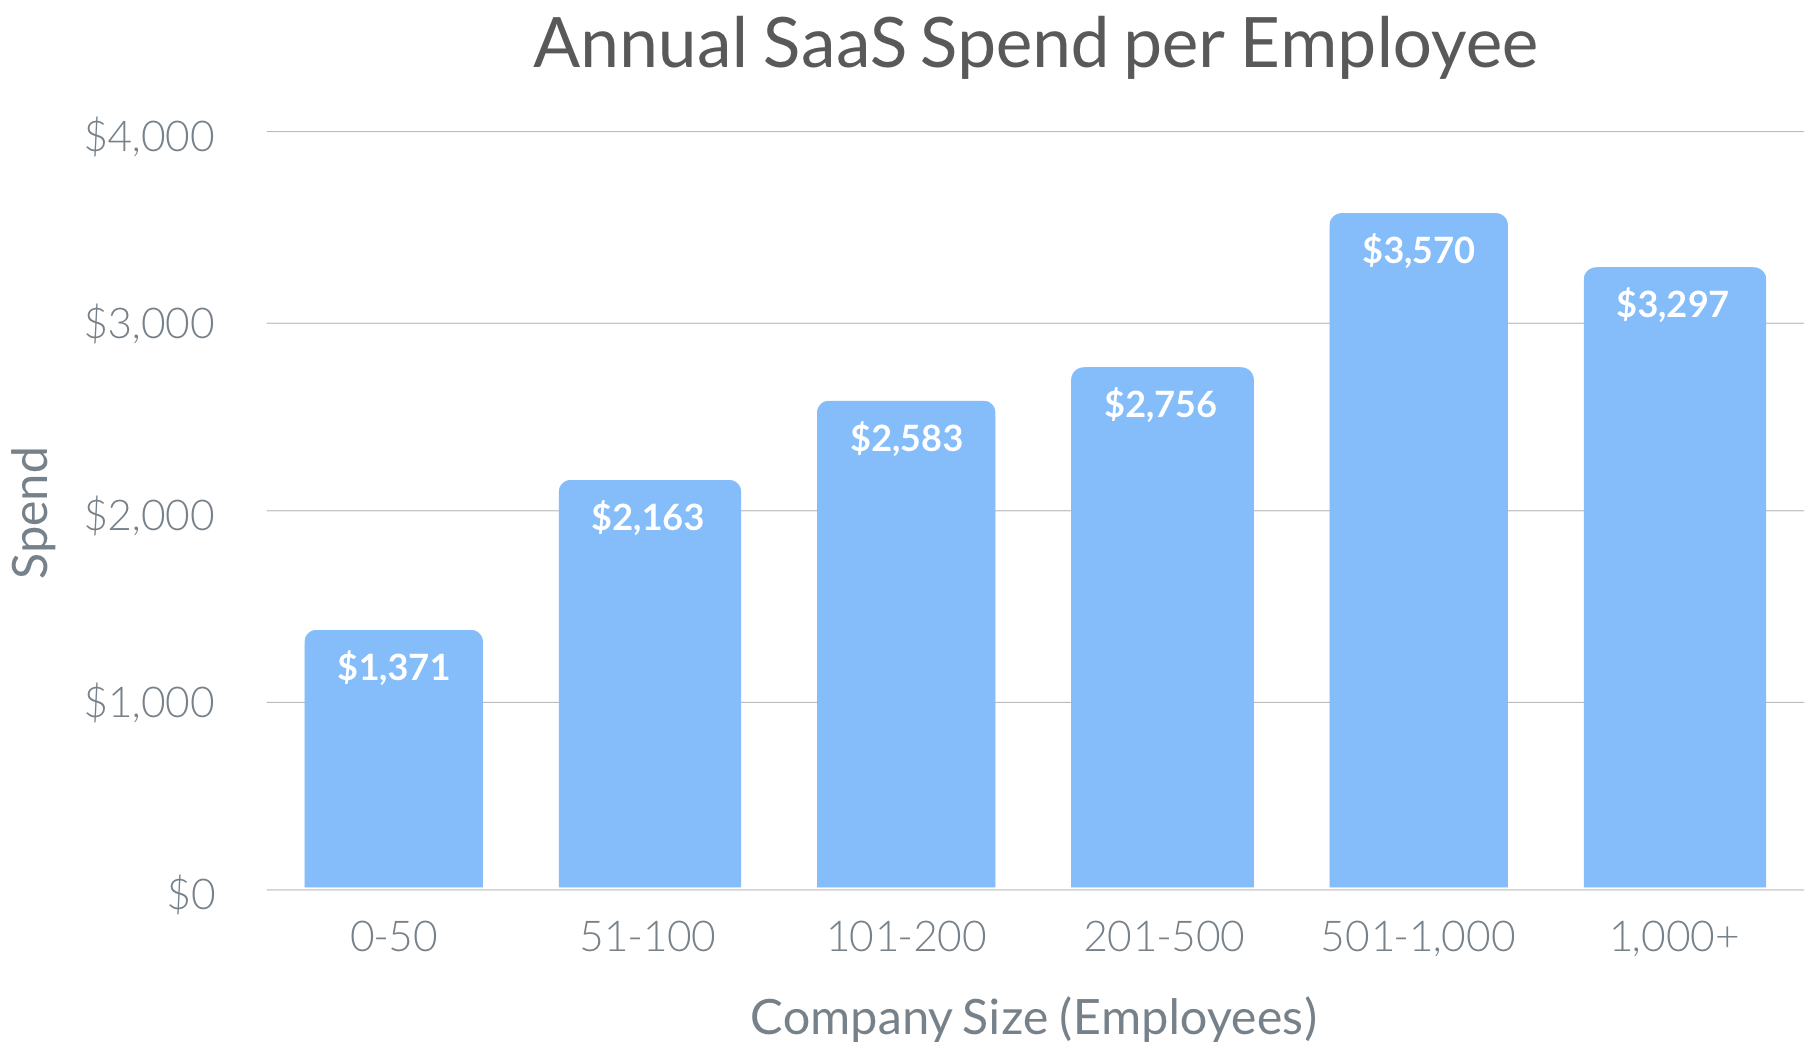 Annual SaaS Spend per Employee